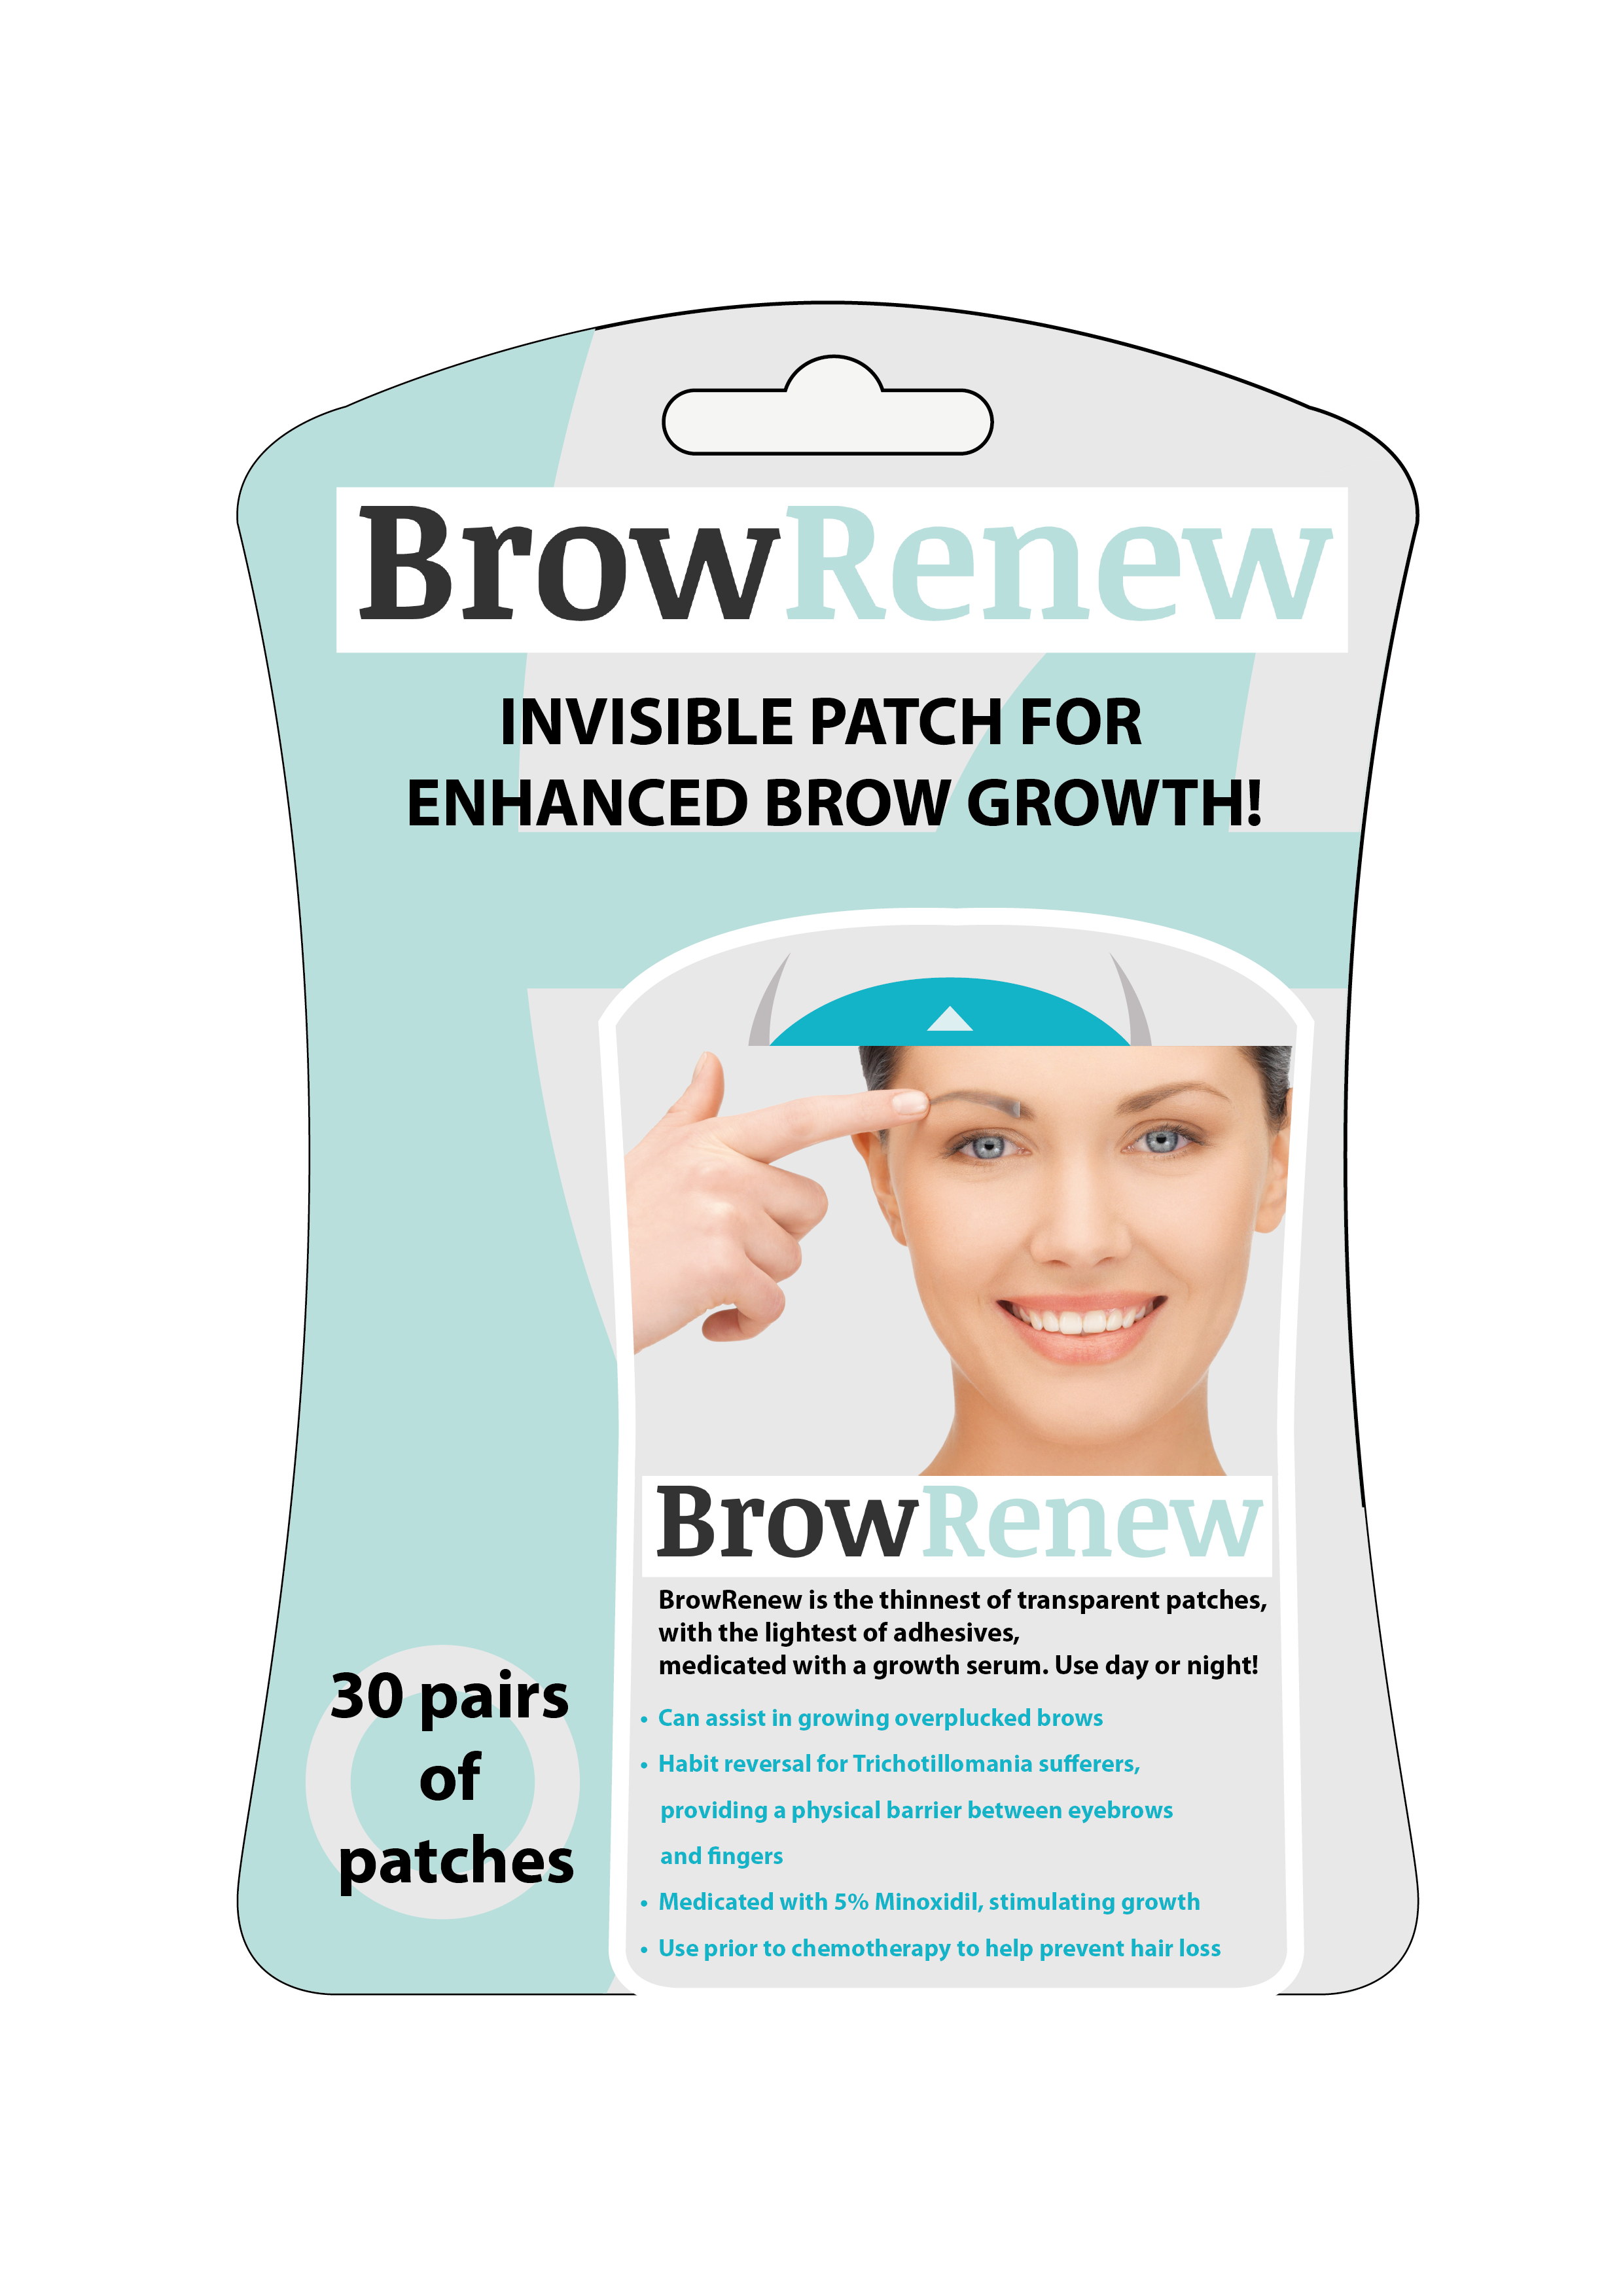 Brow Renew A Solution To Eyebrow Pulling Indiegogo